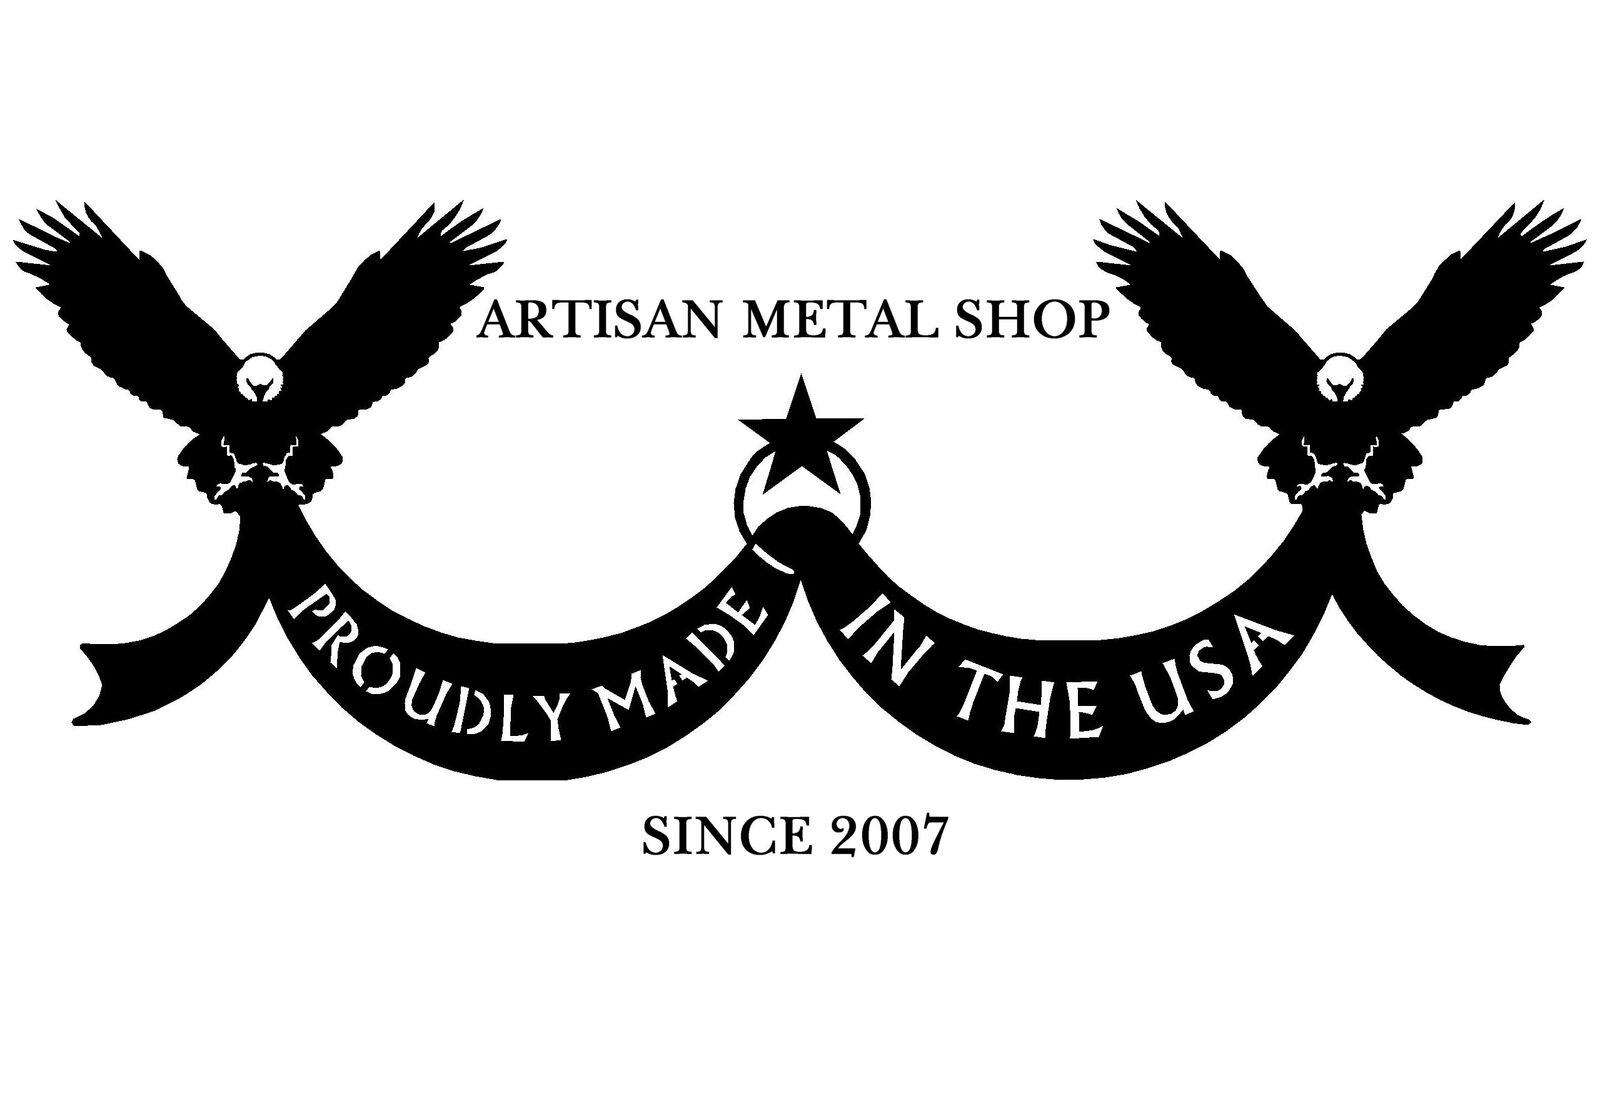 Artisan Metal Shop